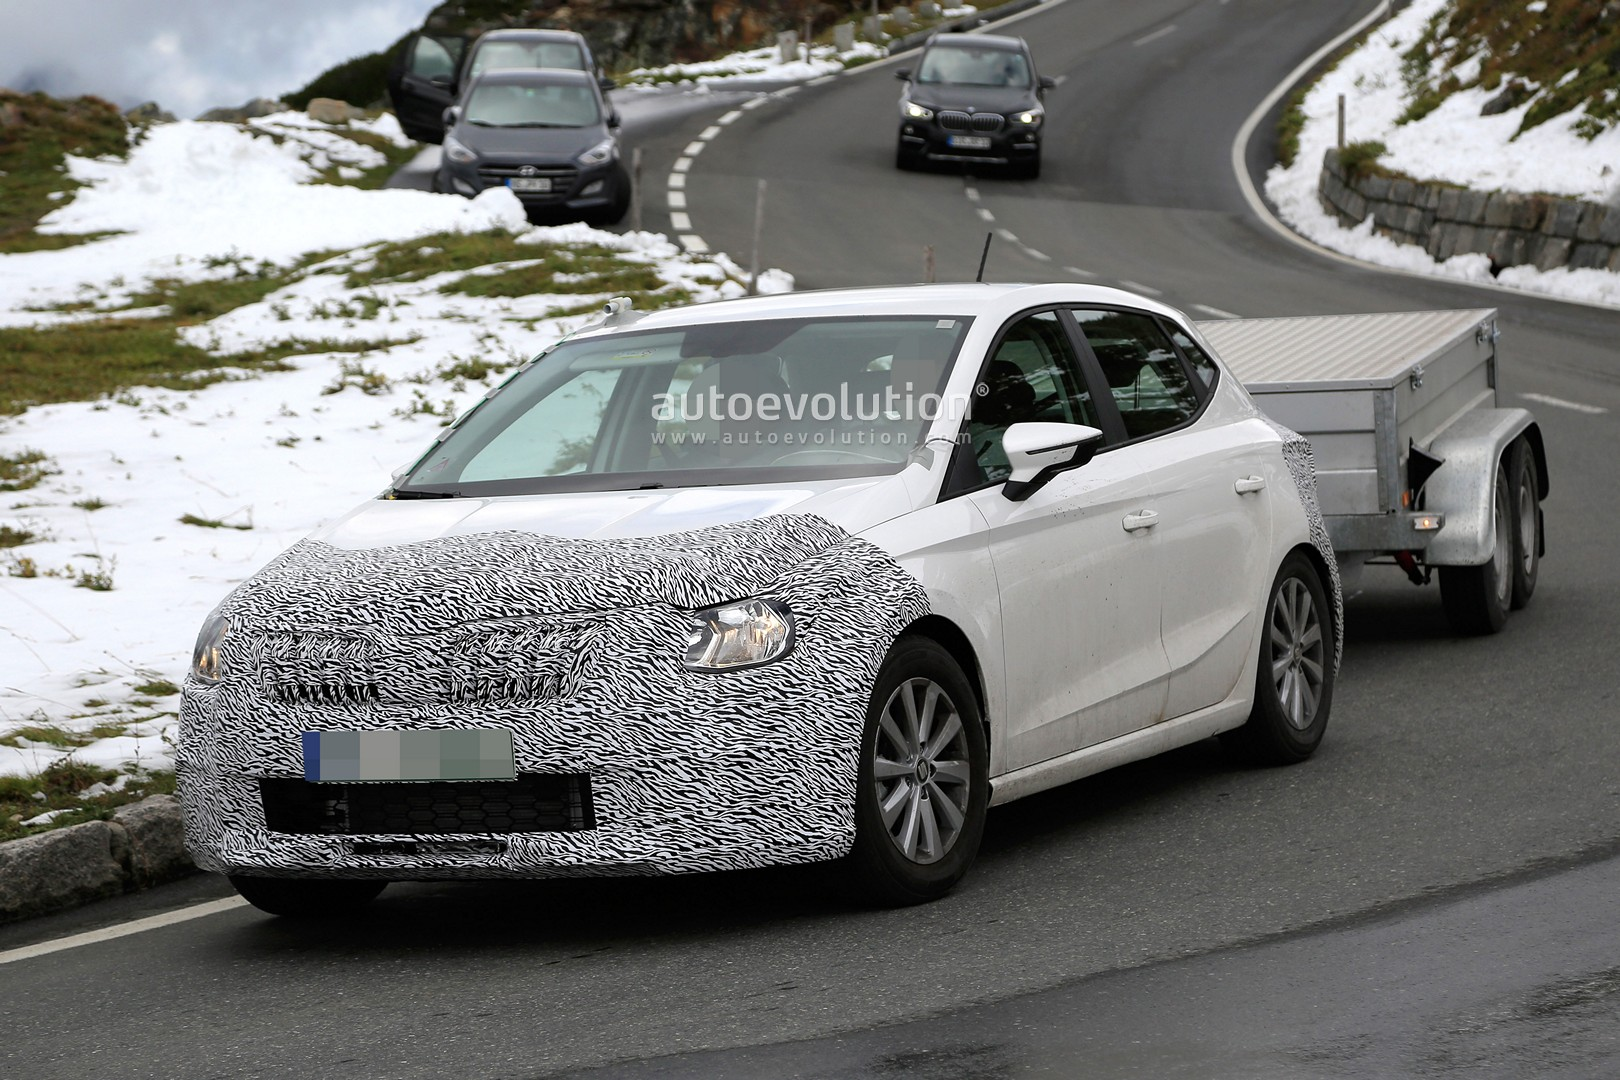 2019 - [Skoda] Scala Skoda-rapid-replacement-to-take-on-the-vw-golf-is-getting-a-new-name-127003_1